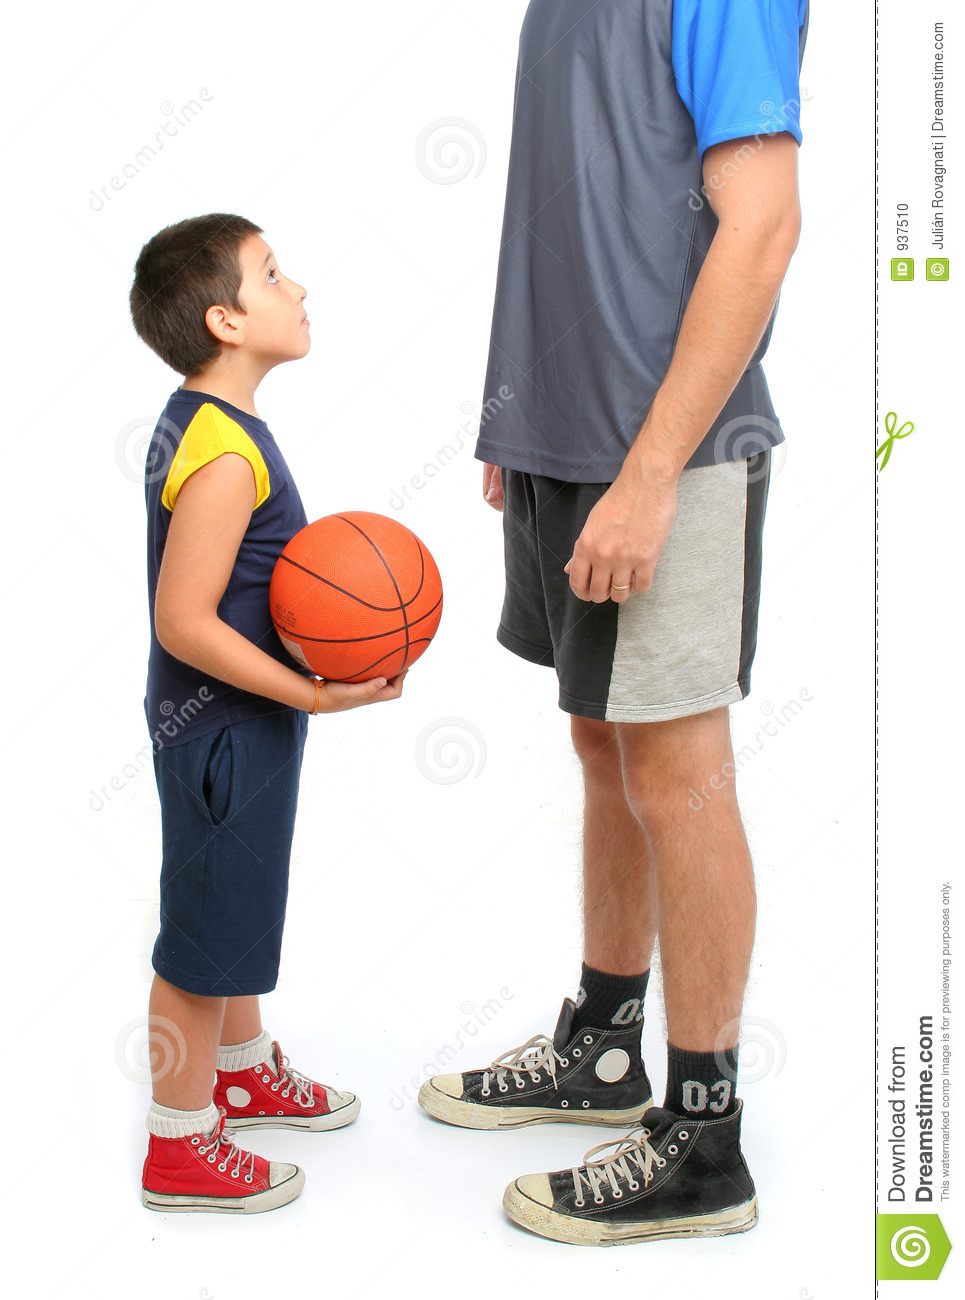 Little Boy Asking Big Man To Play Basketball Stock Photo - Image ...